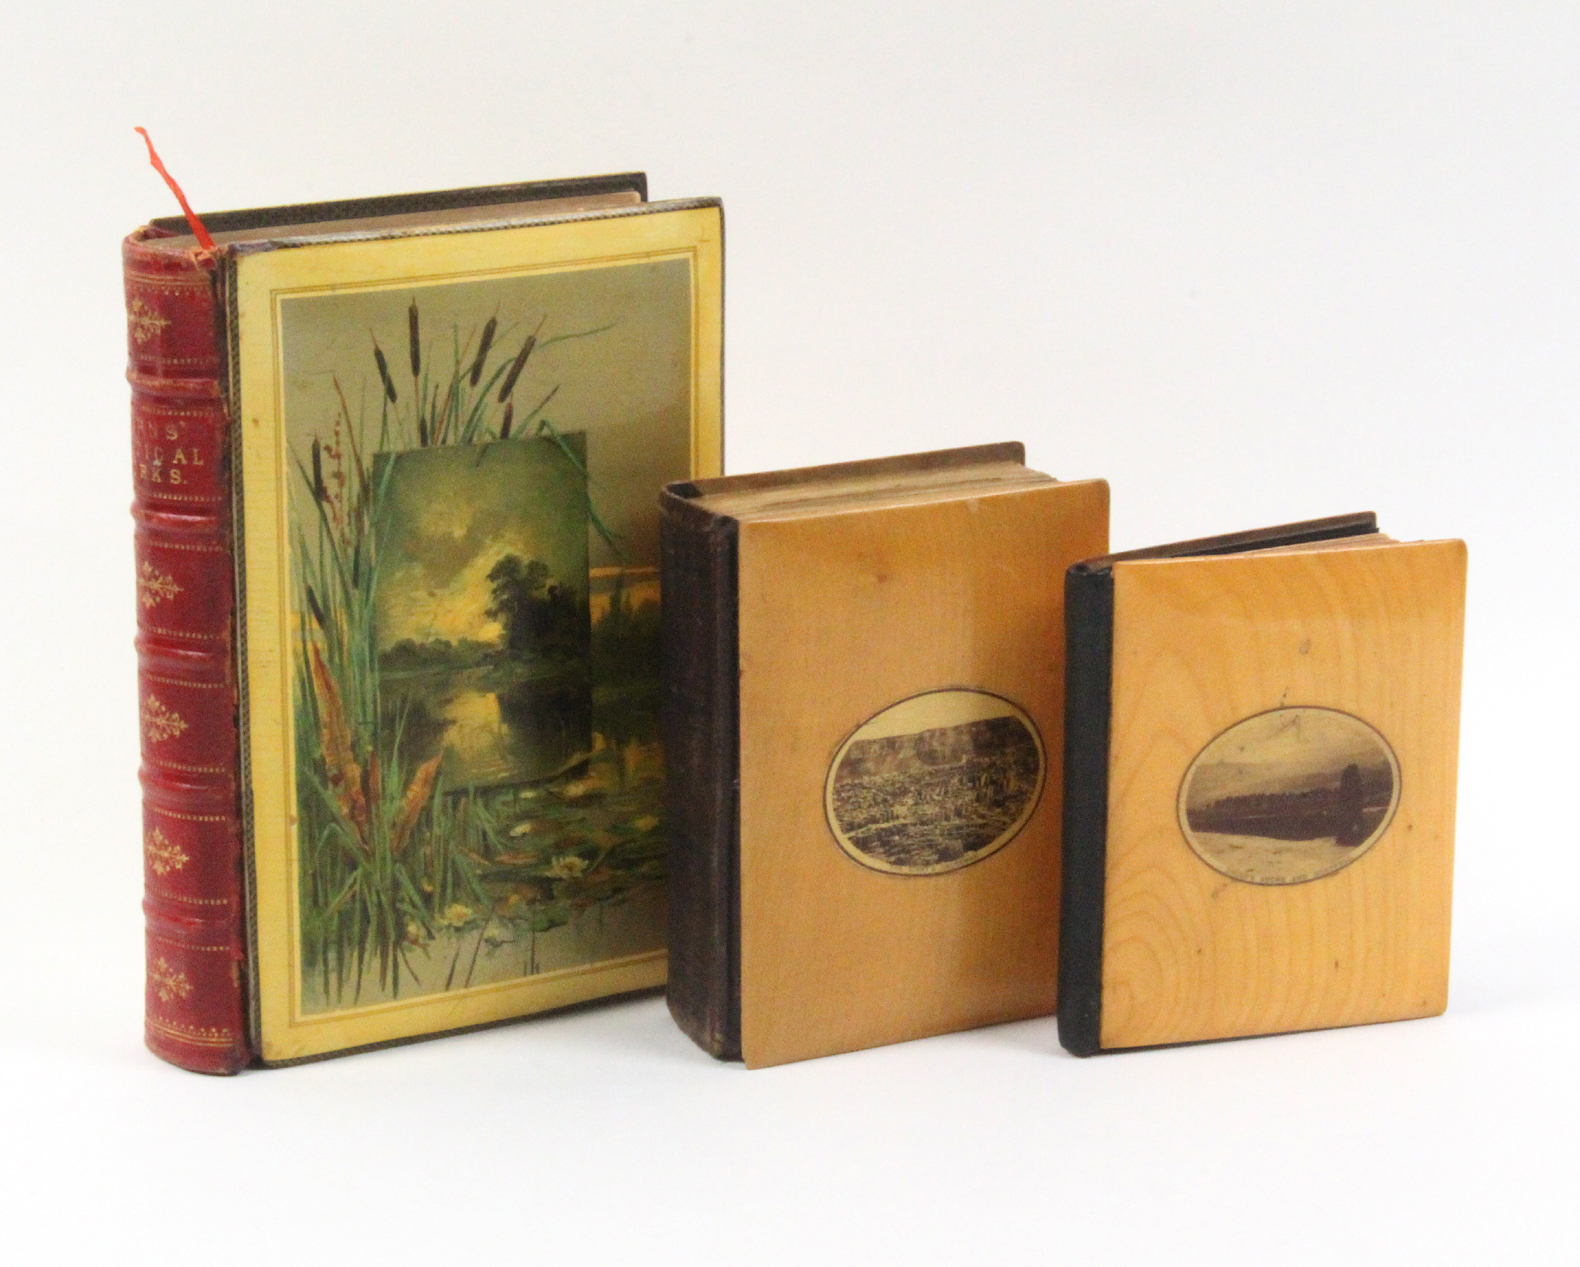 Mauchline ware - three books - comprising Burns Poetical Works (large colour print river